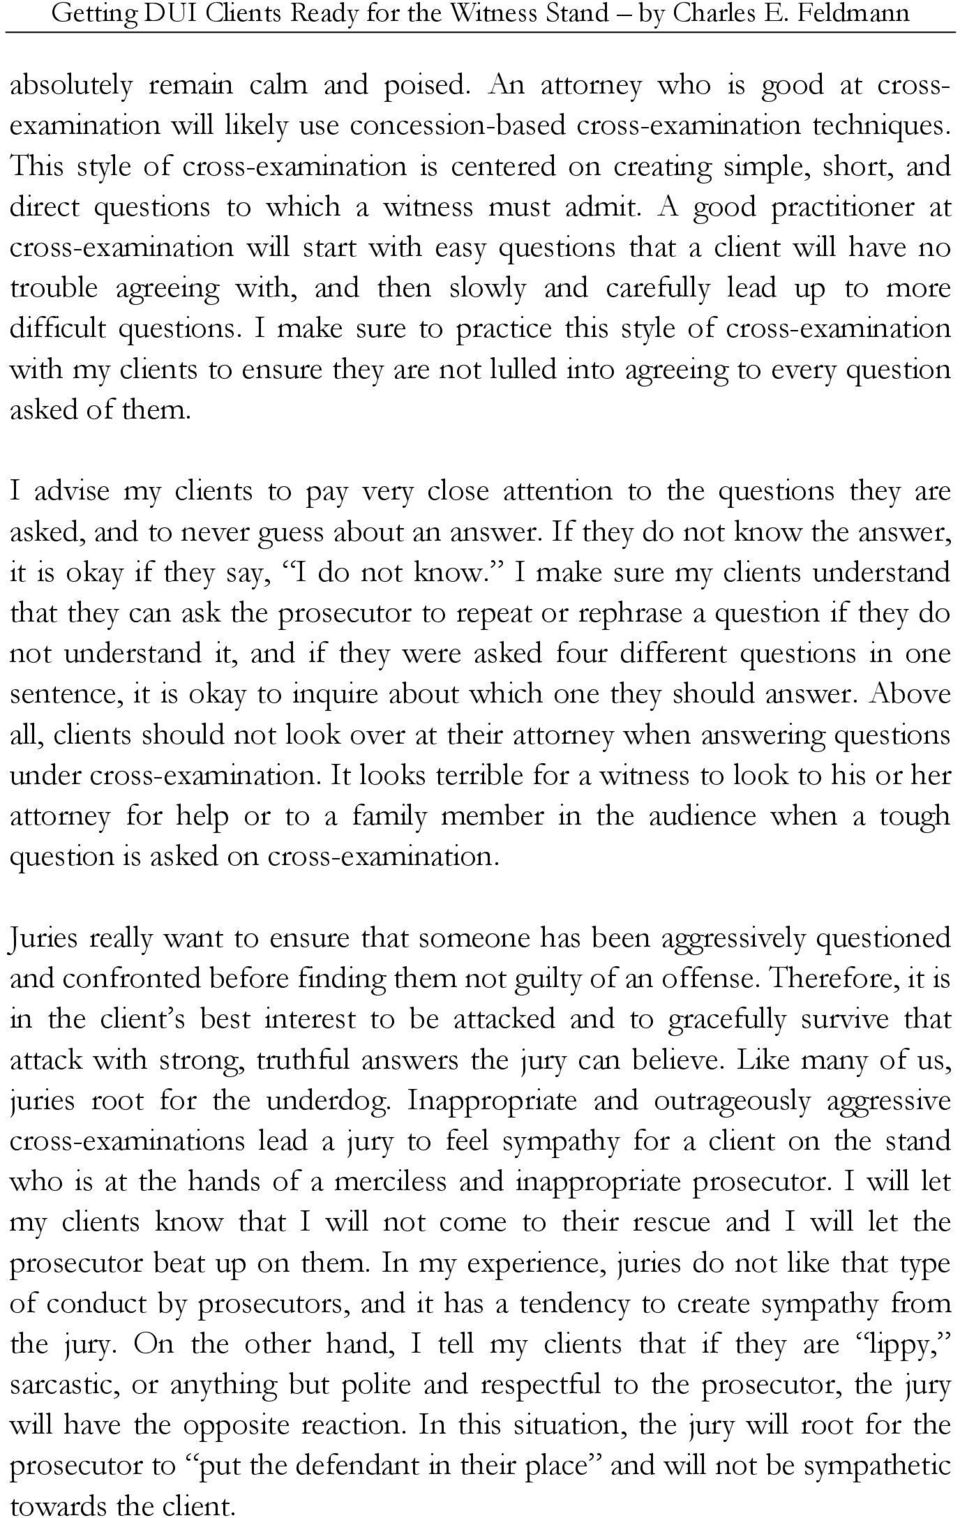 This style of cross-examination is centered on creating simple, short, and direct questions to which a witness must admit.